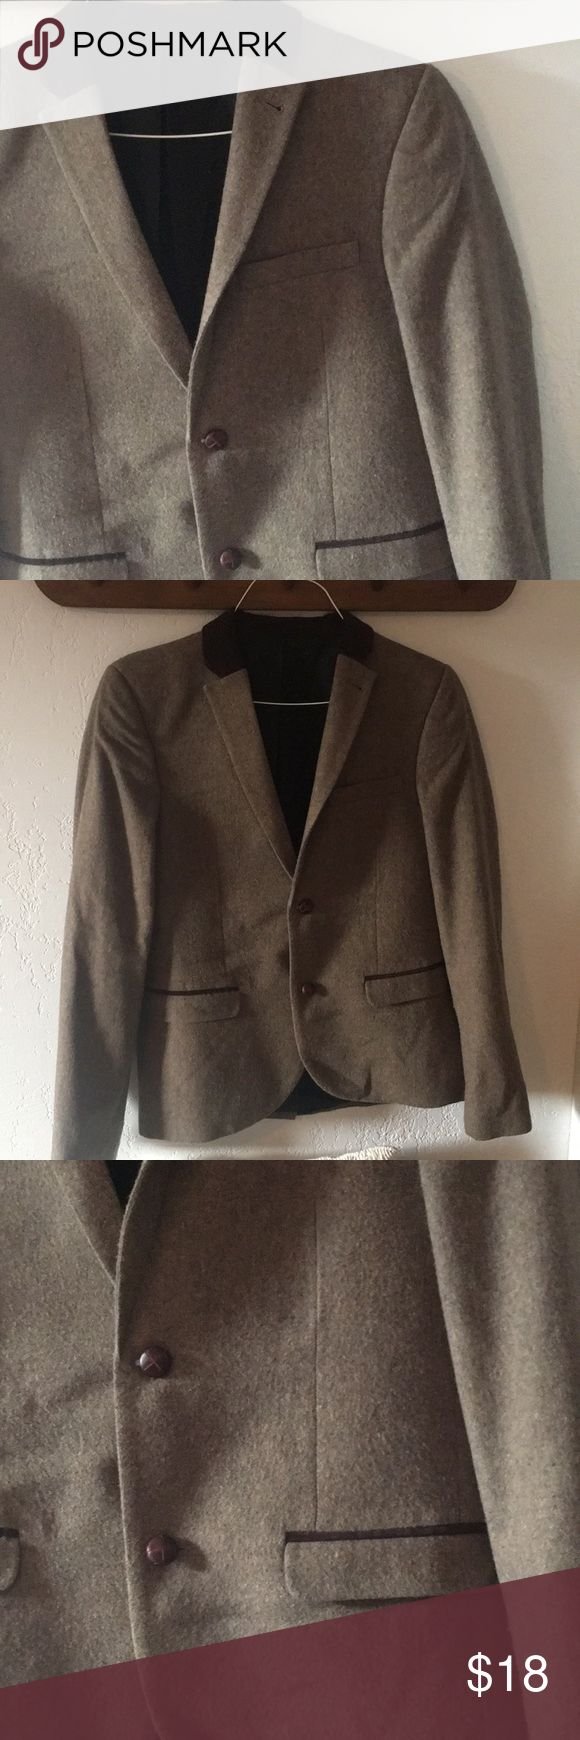 MENS TOPSHOP TOPMAN Brown Tweed Blazer Sz 42 Purchased at Topman in London size 42 US MENS BLAZER. Light tan/brown tweed with 2 leather buttons in front. Collar has dark brown corduroy detail Topman Suits & Blazers Sport Coats & Blazers